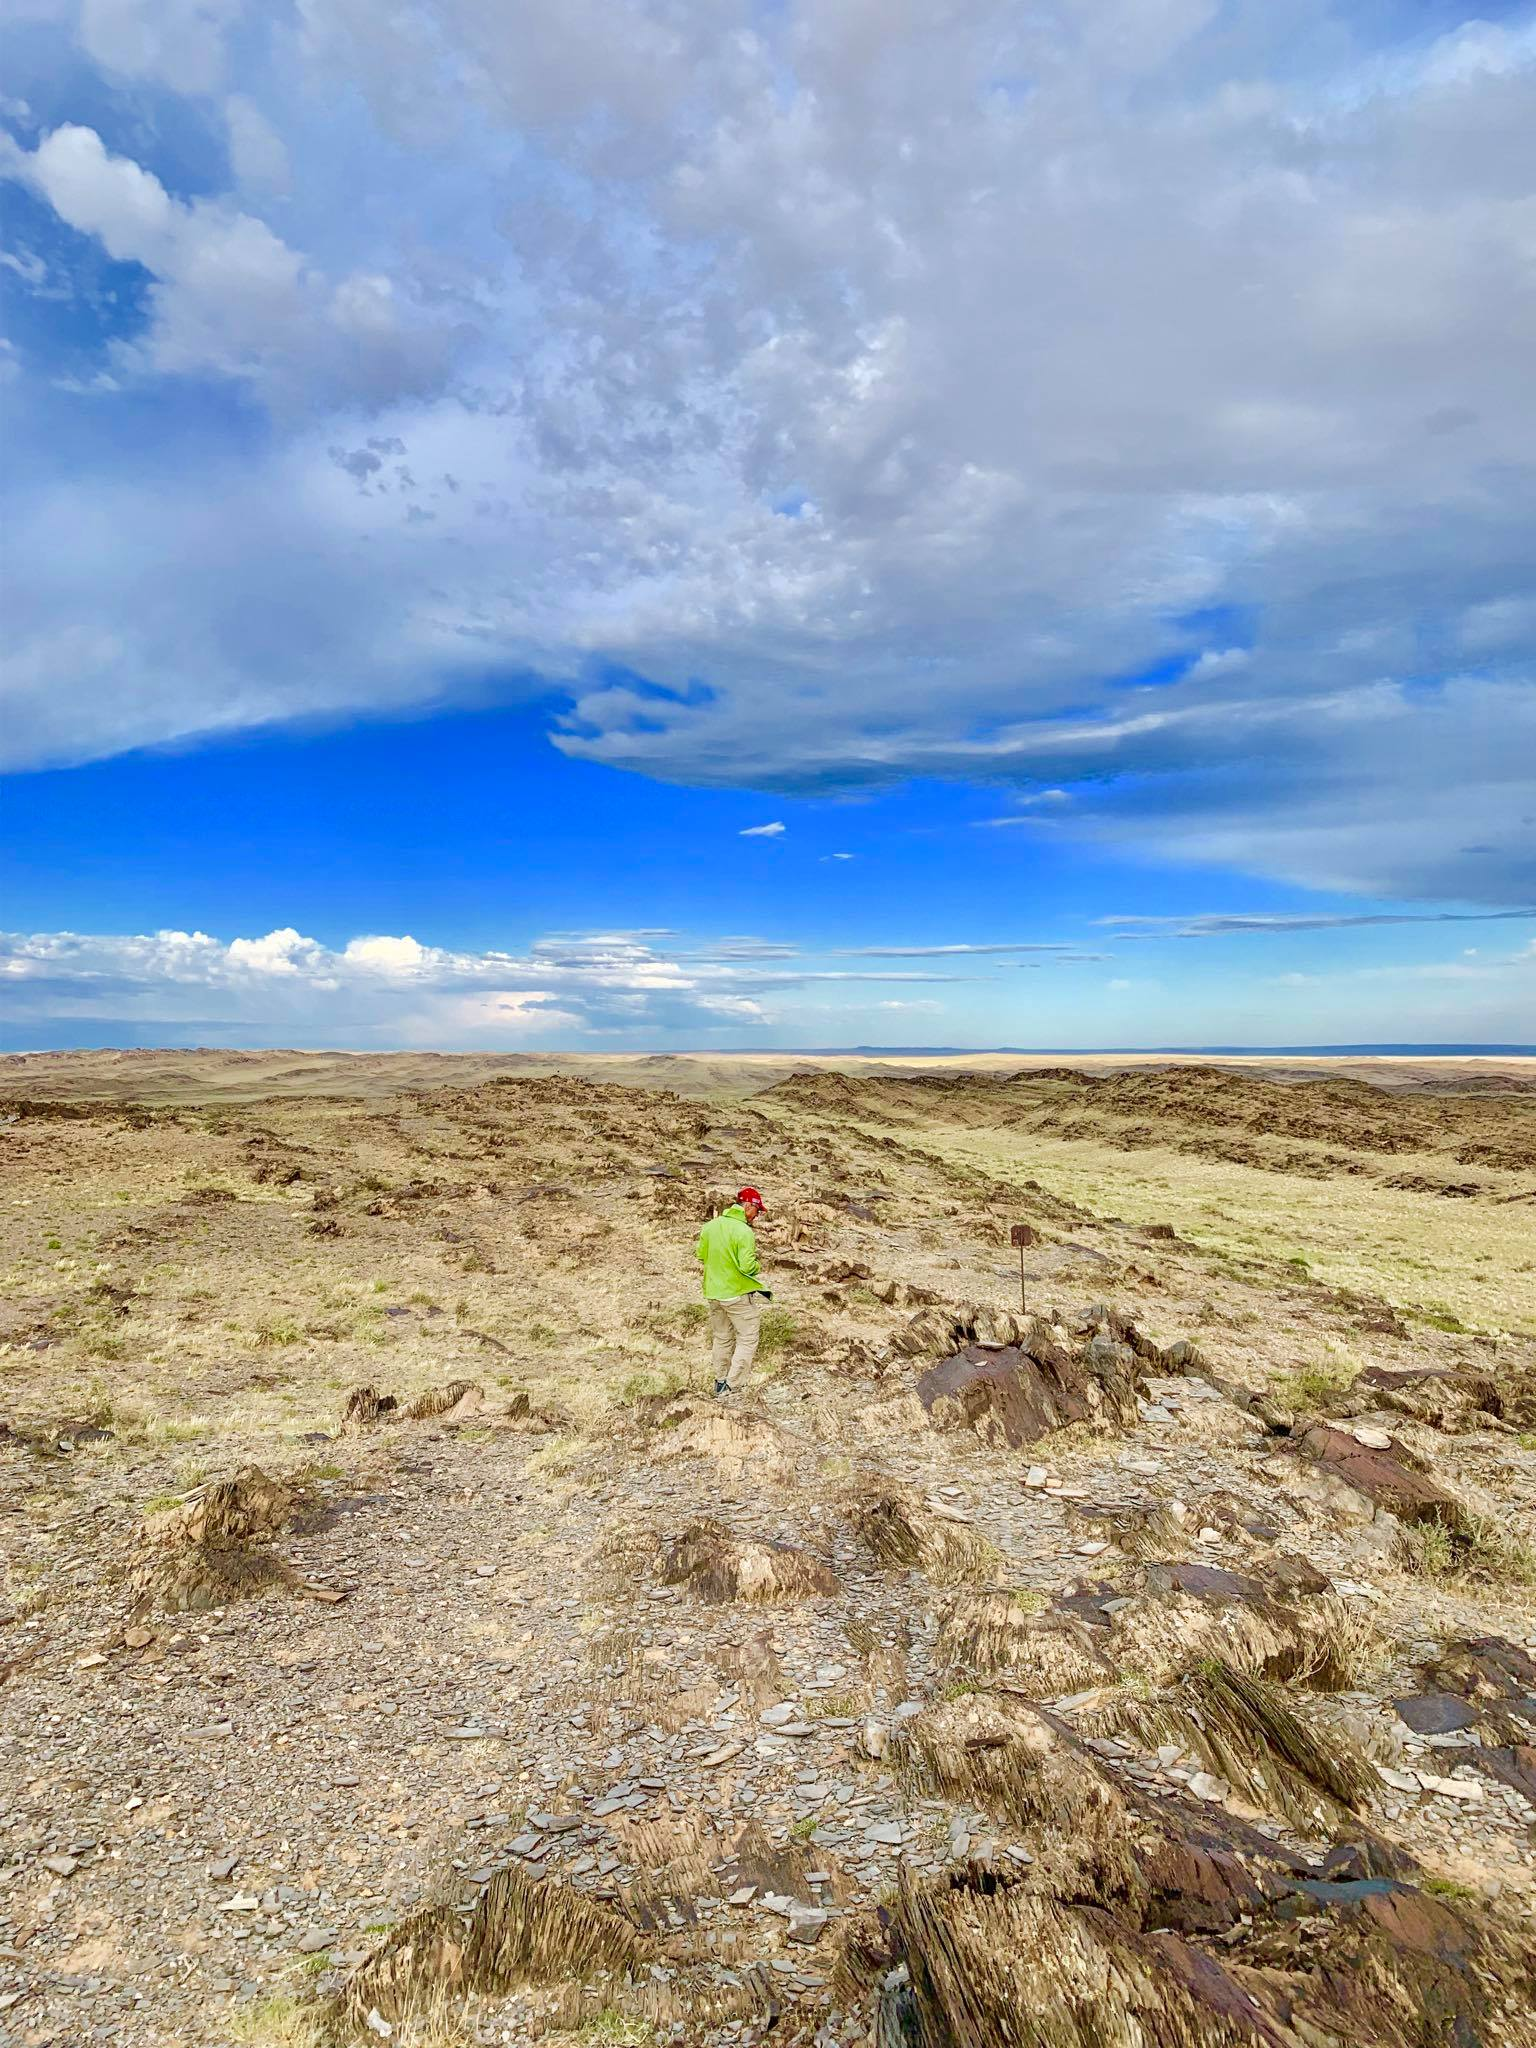 Kach Solo Travels in 2019 One of the hikes during my trip in Gobi desert14.jpg